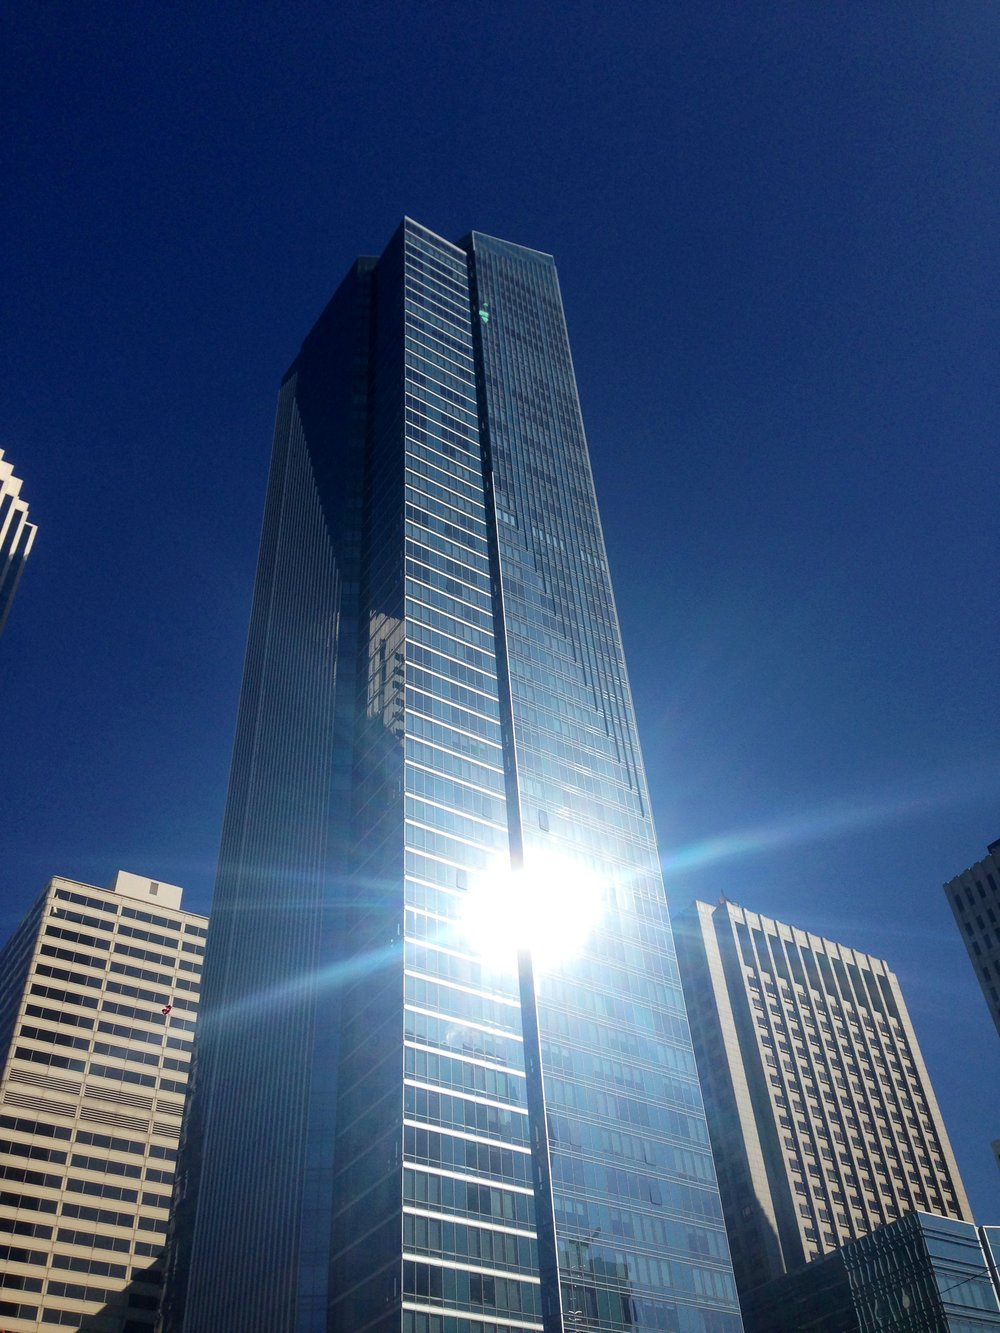 The Millennium Tower luxury skyscraper in San Francisco is sinking and tilting. – Image Credit:  MichaelTG/WikimediaCommons